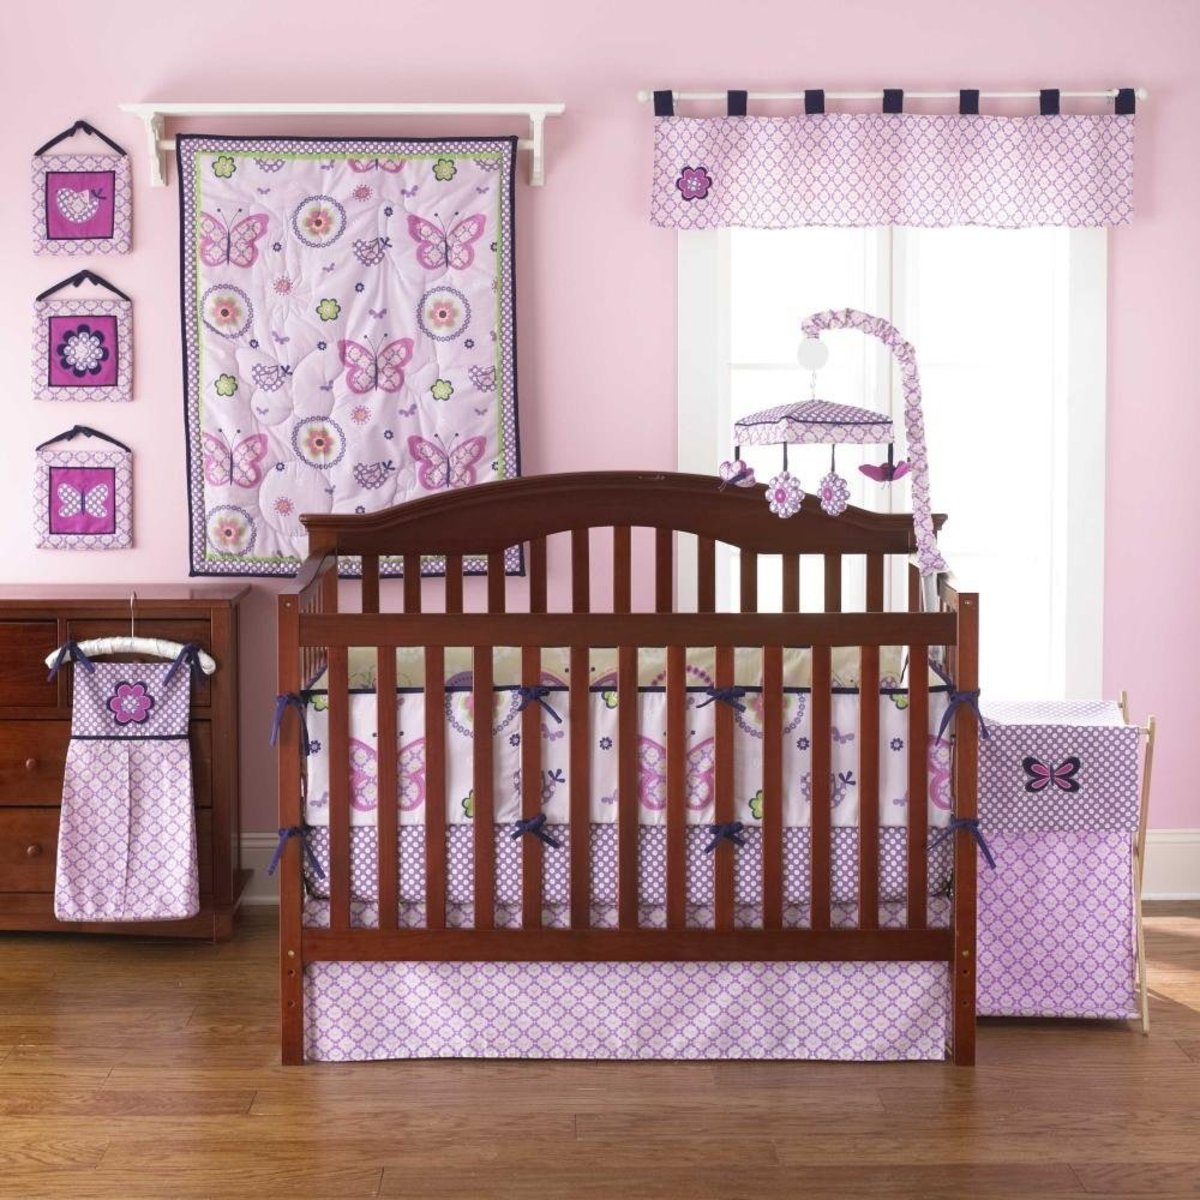 Lavender 4-Piece Mini Crib Bedding Set